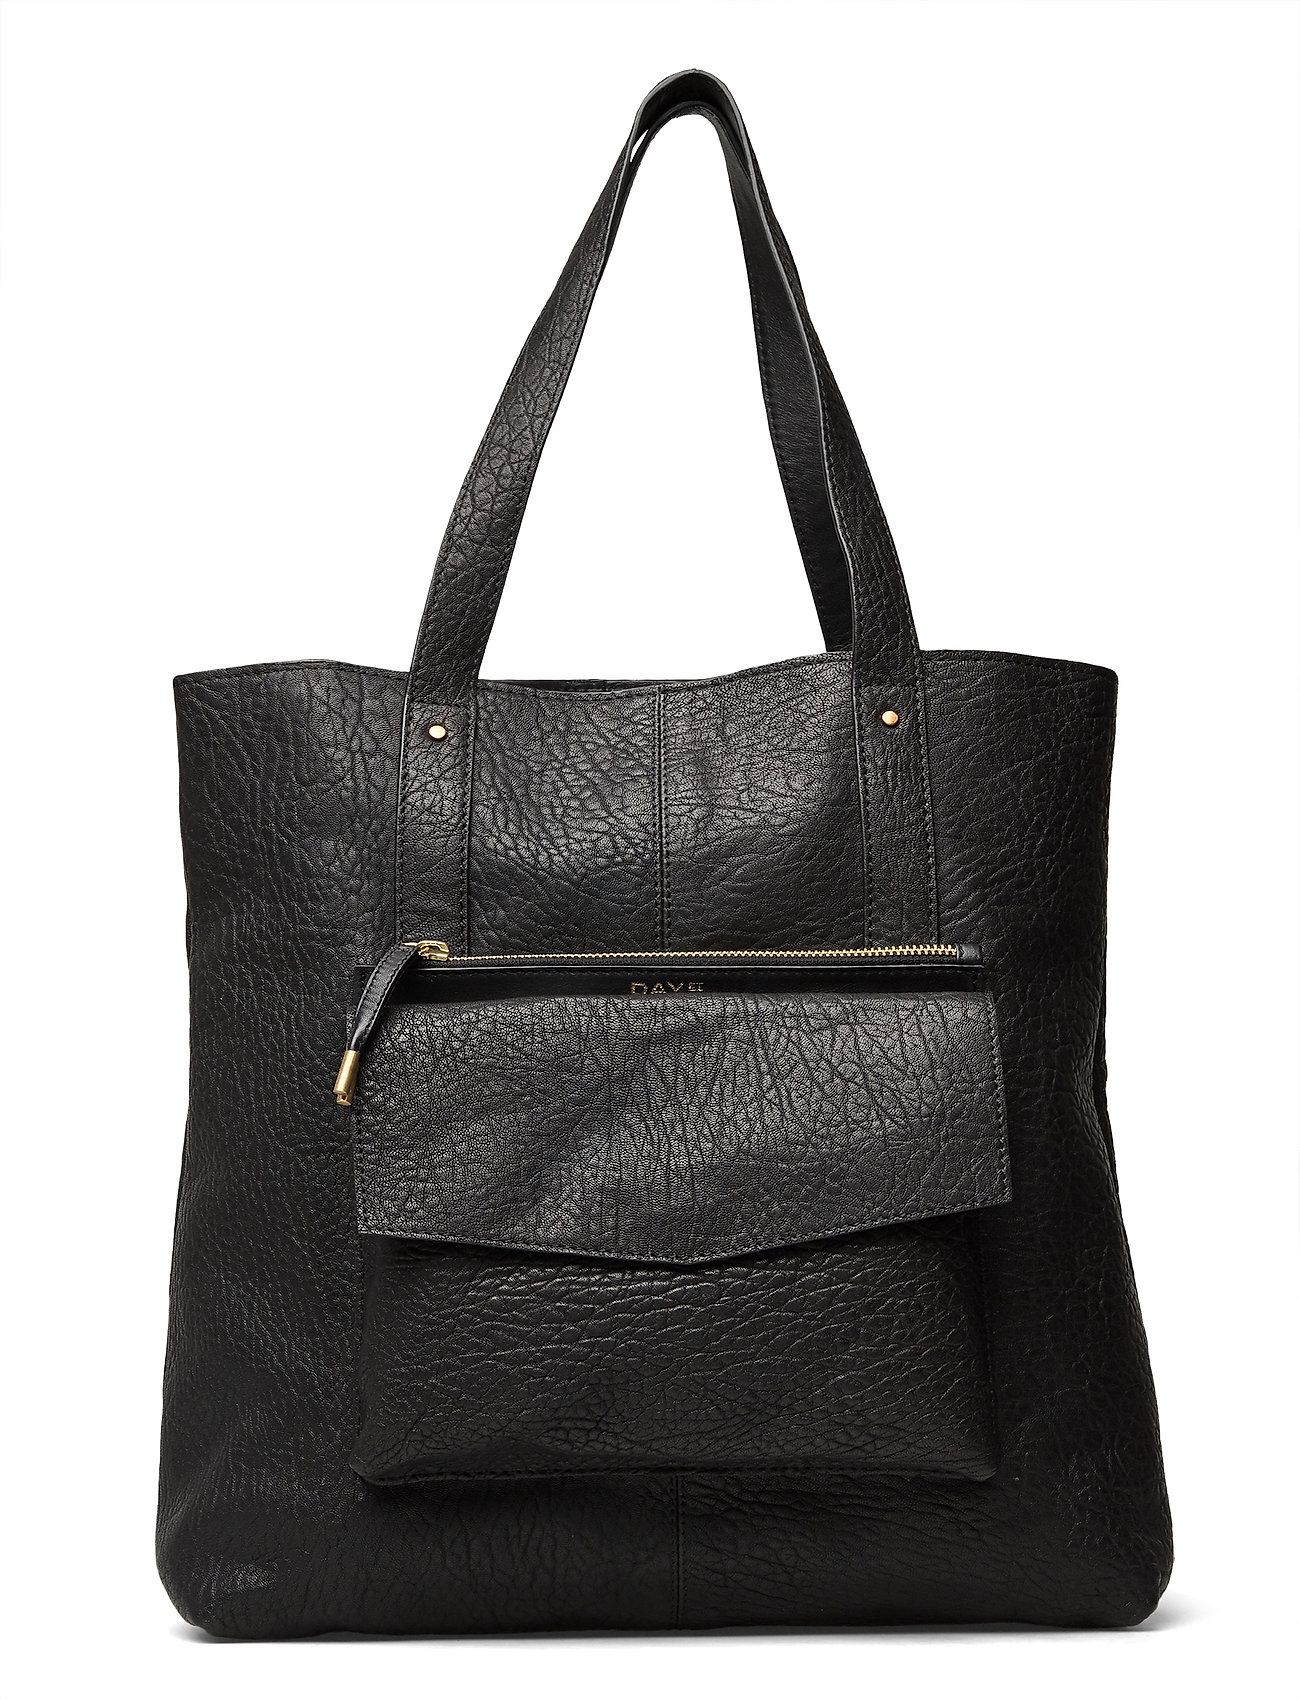 Image of Day Bubbly Leather Tote Shopper Taske Sort DAY Et (3447241237)